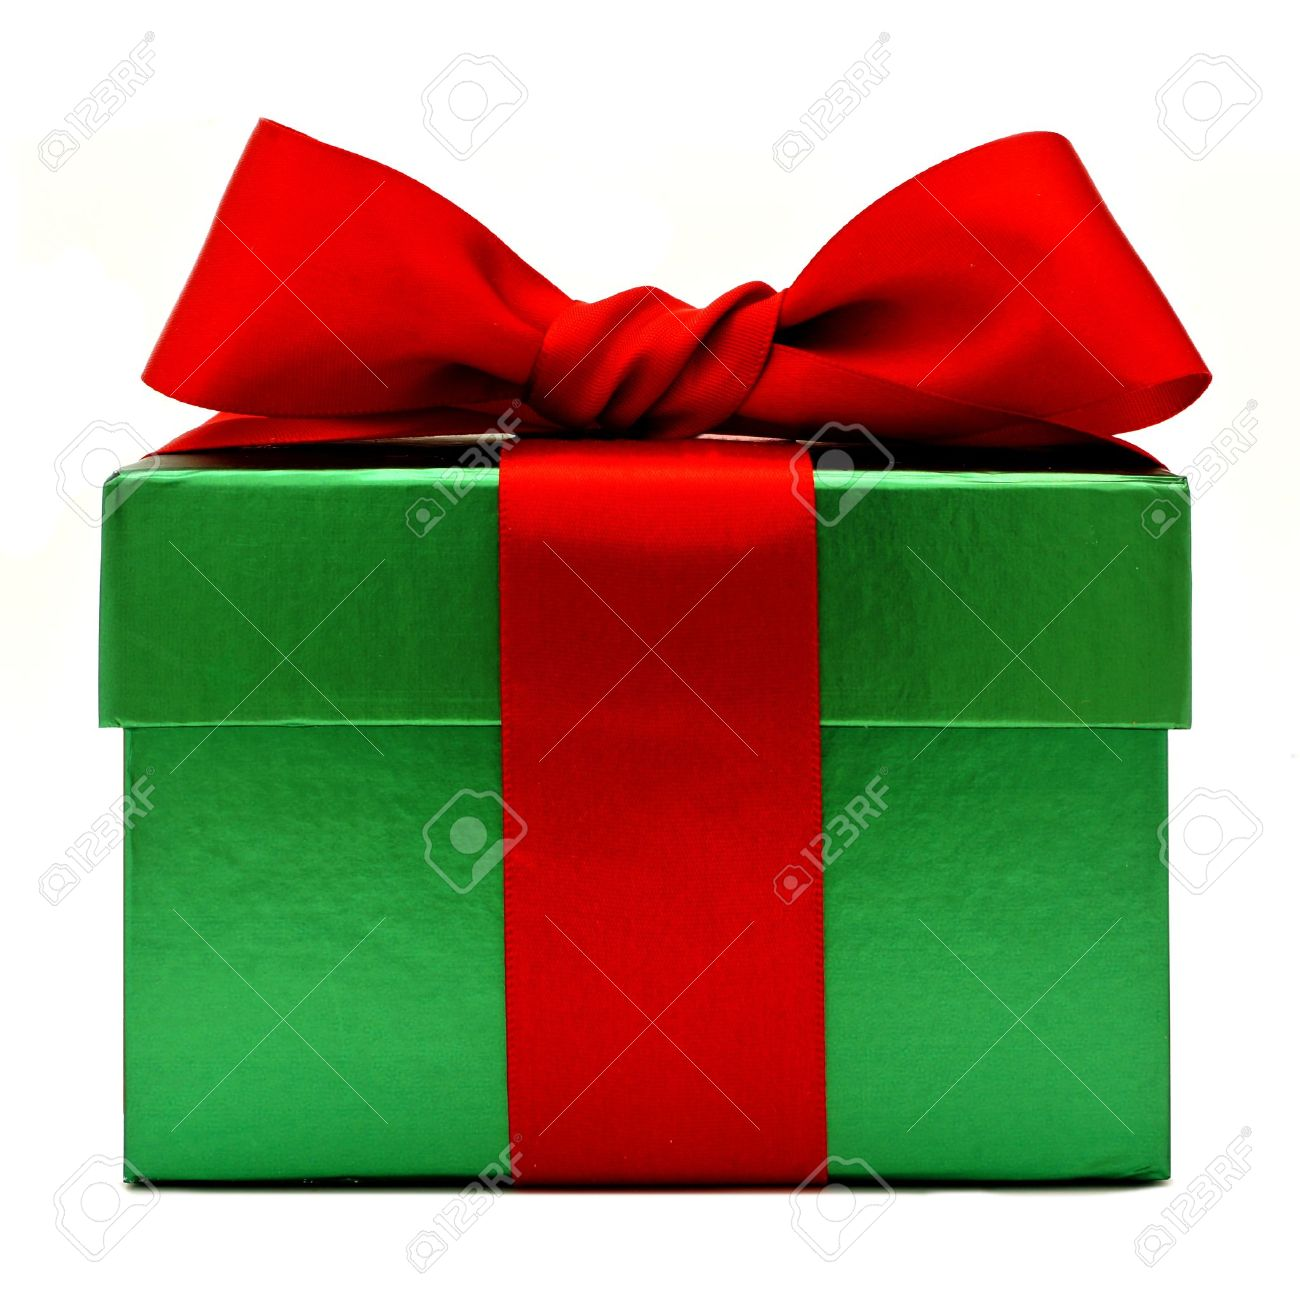 Green Christmas Gift Box With Red Bow Isolated On White